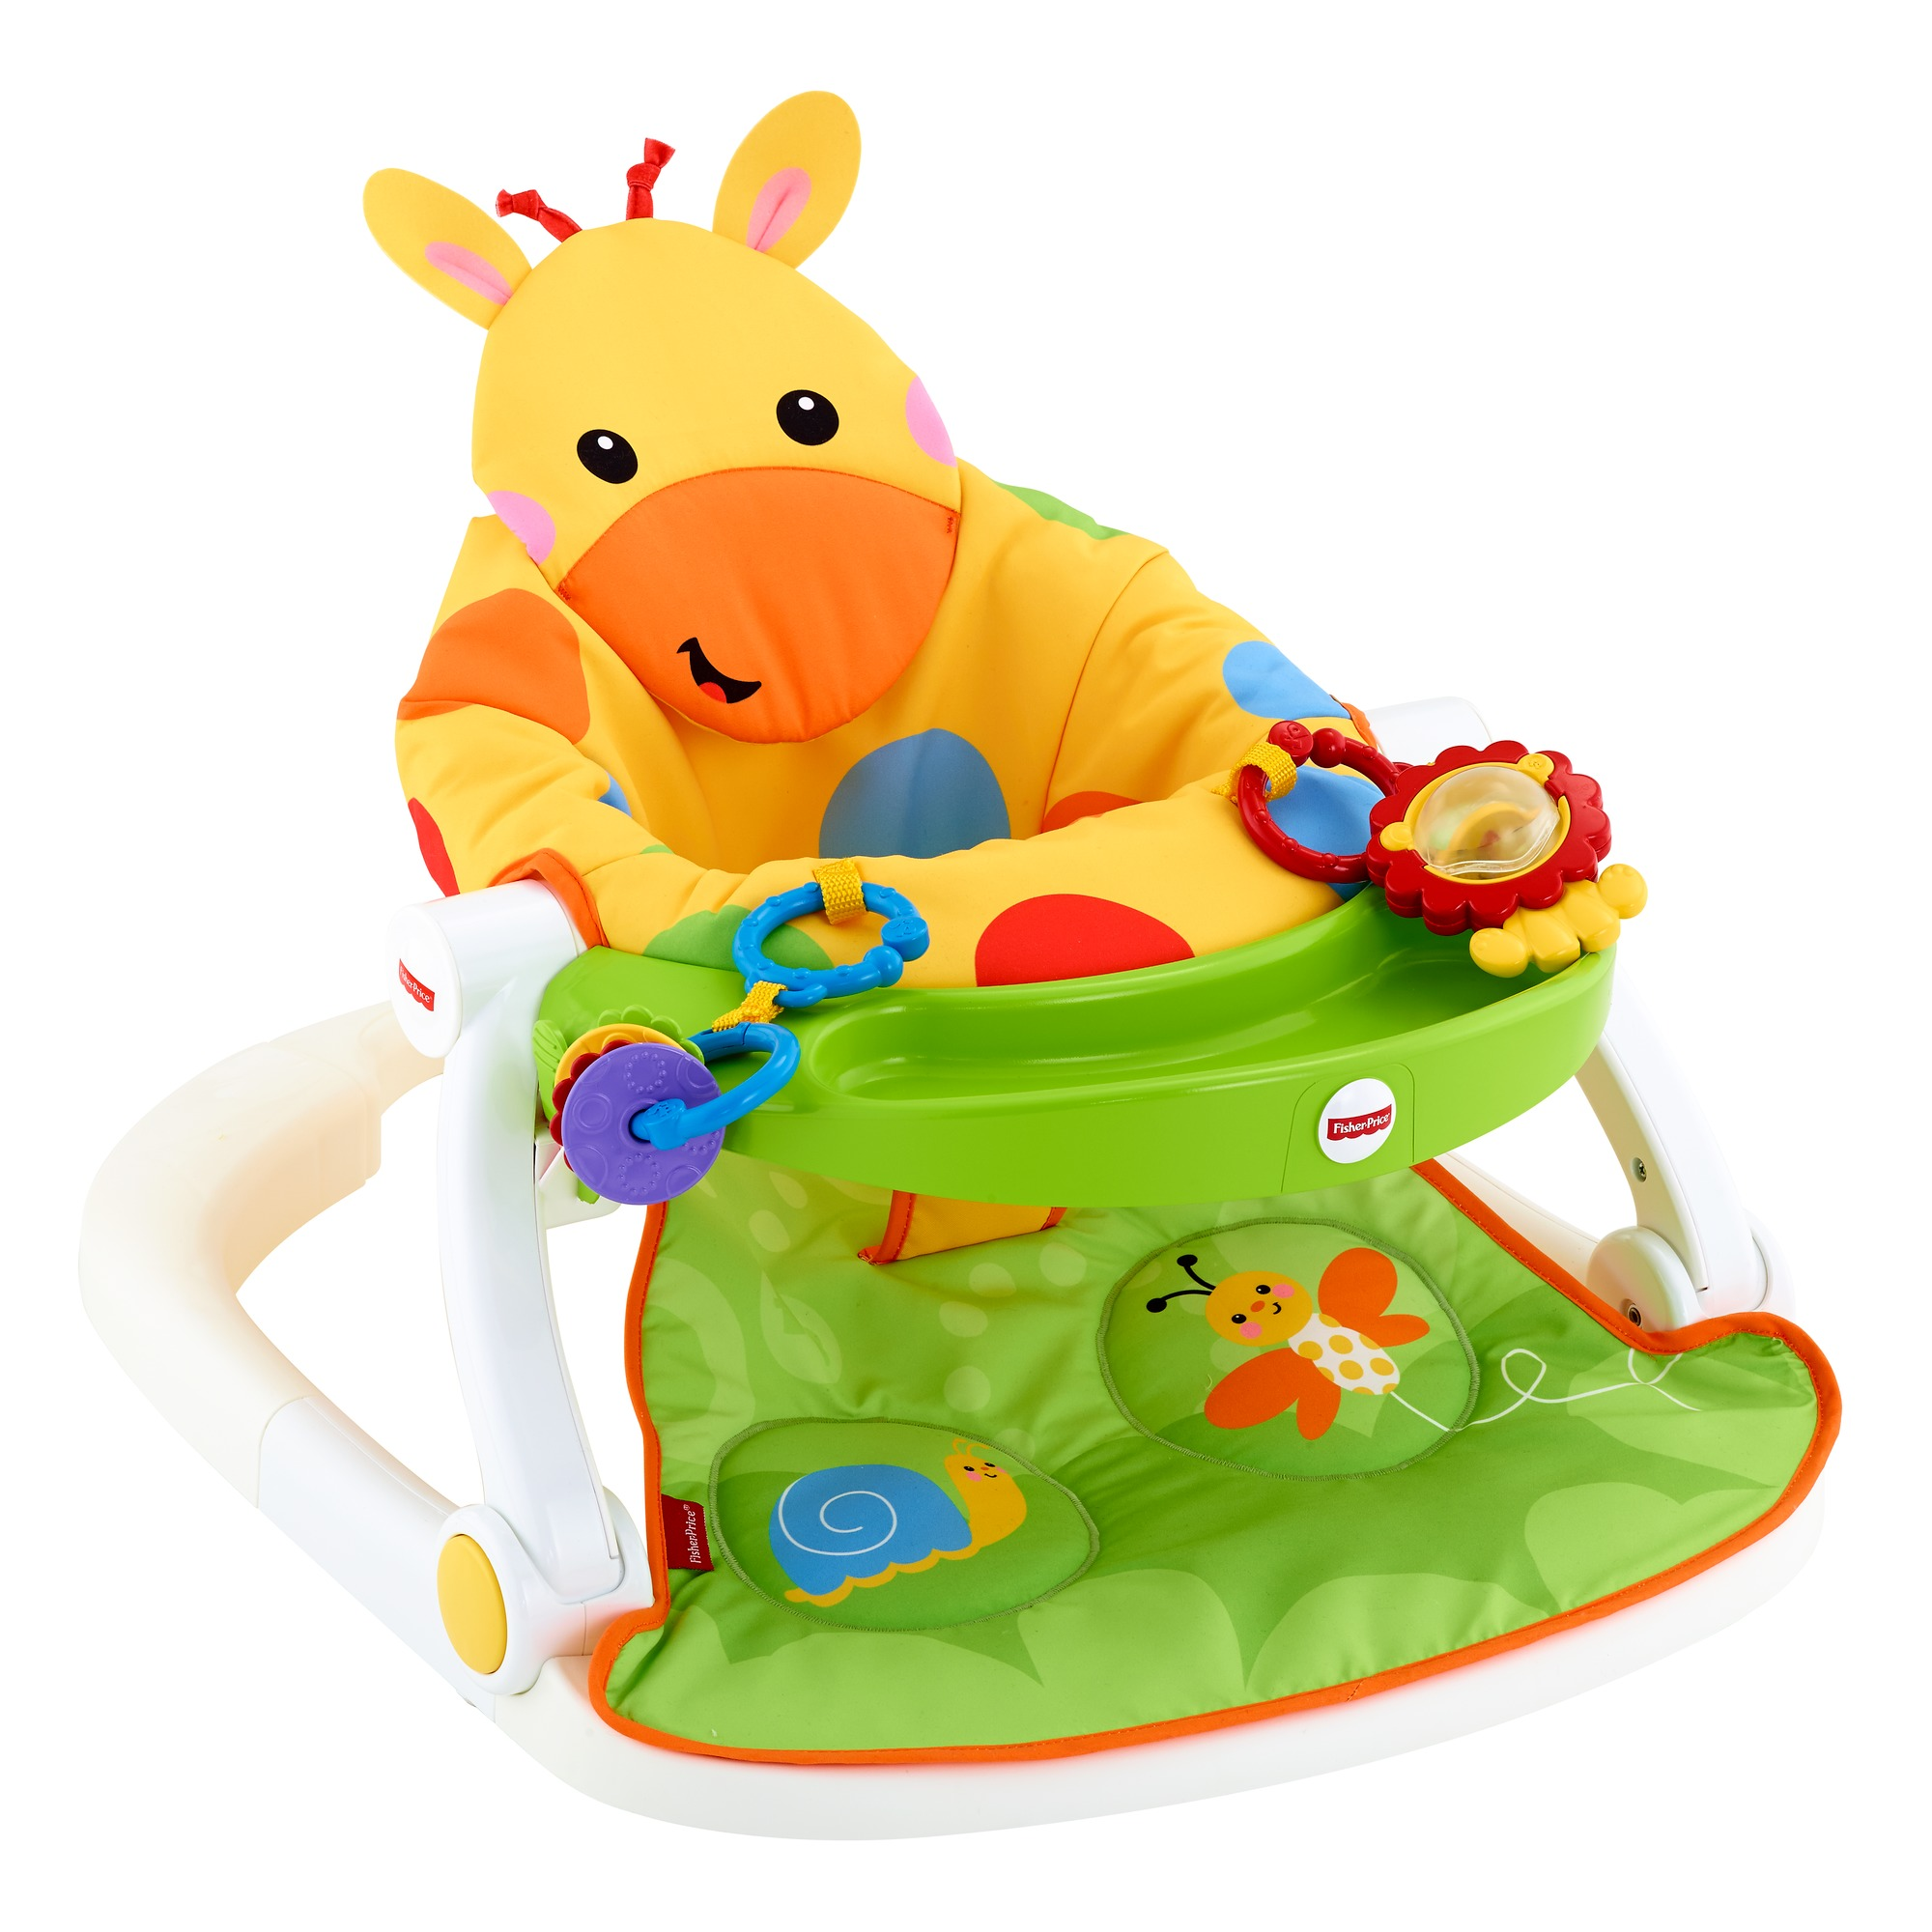 Fisher-Price Sit-Me-Up Floor Seat with Tray - Giraffe  sc 1 st  Walmart & Fisher-Price Sit-Me-Up Floor Seat with Tray - Giraffe - Walmart.com